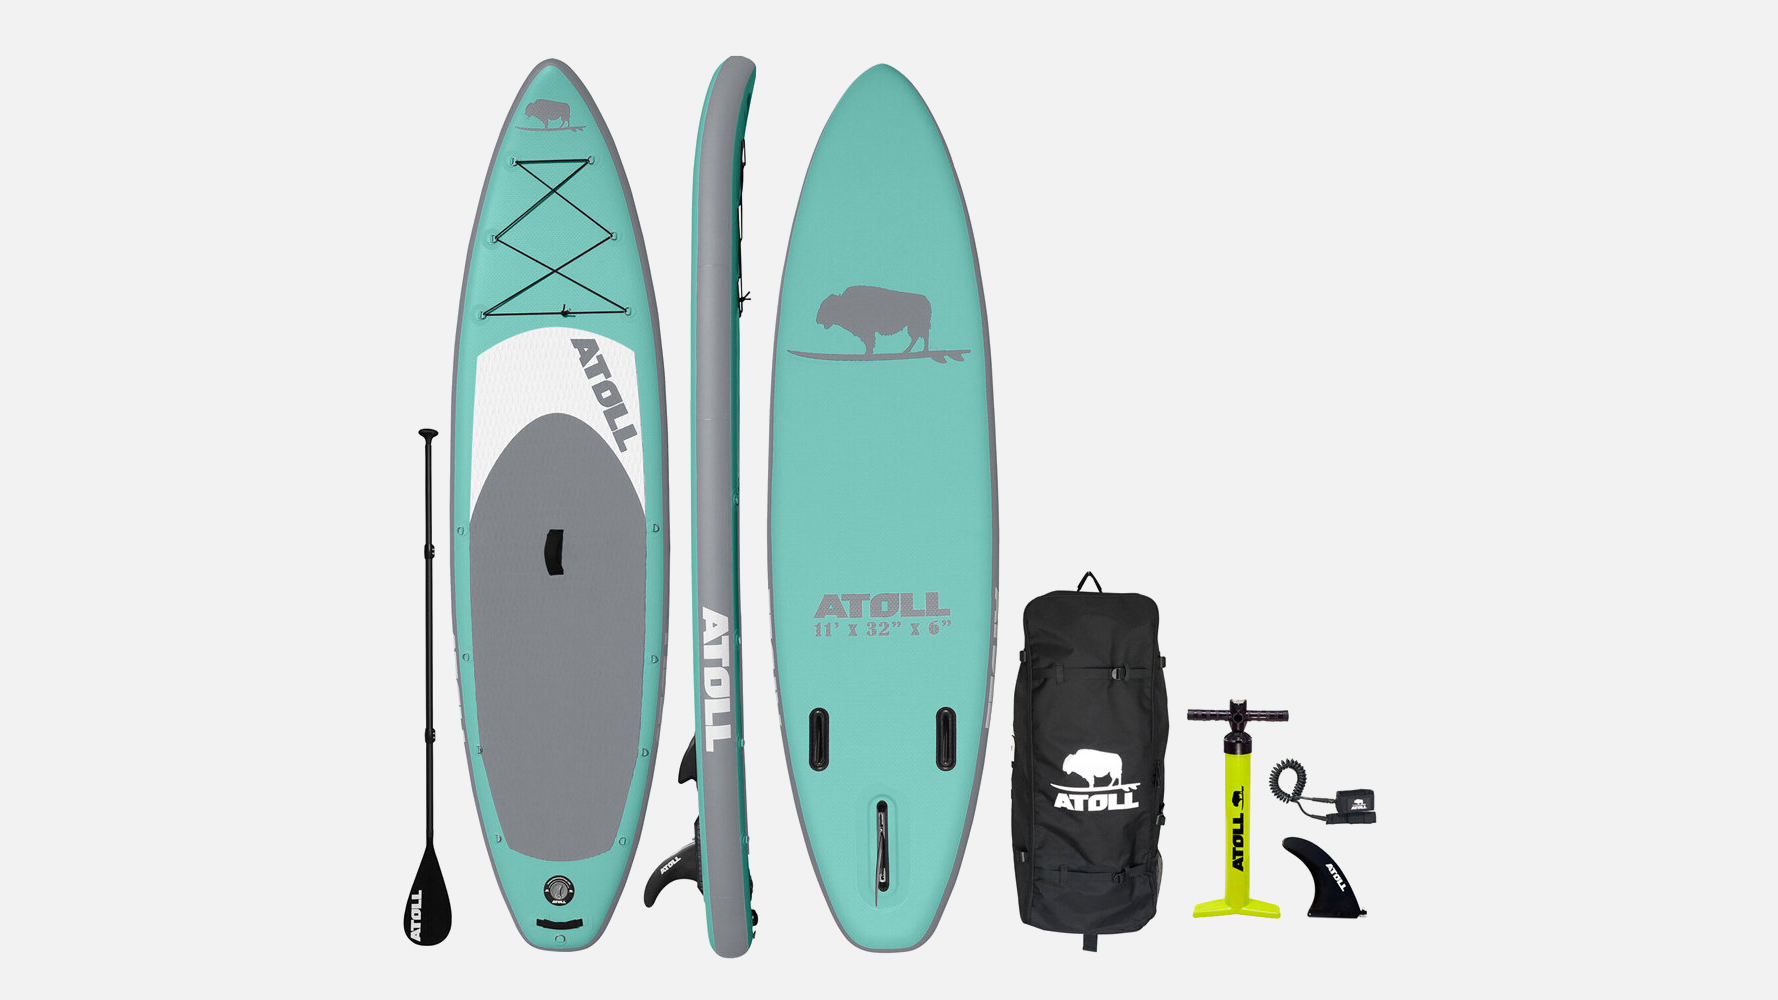 Atoll Inflatable Paddleboard